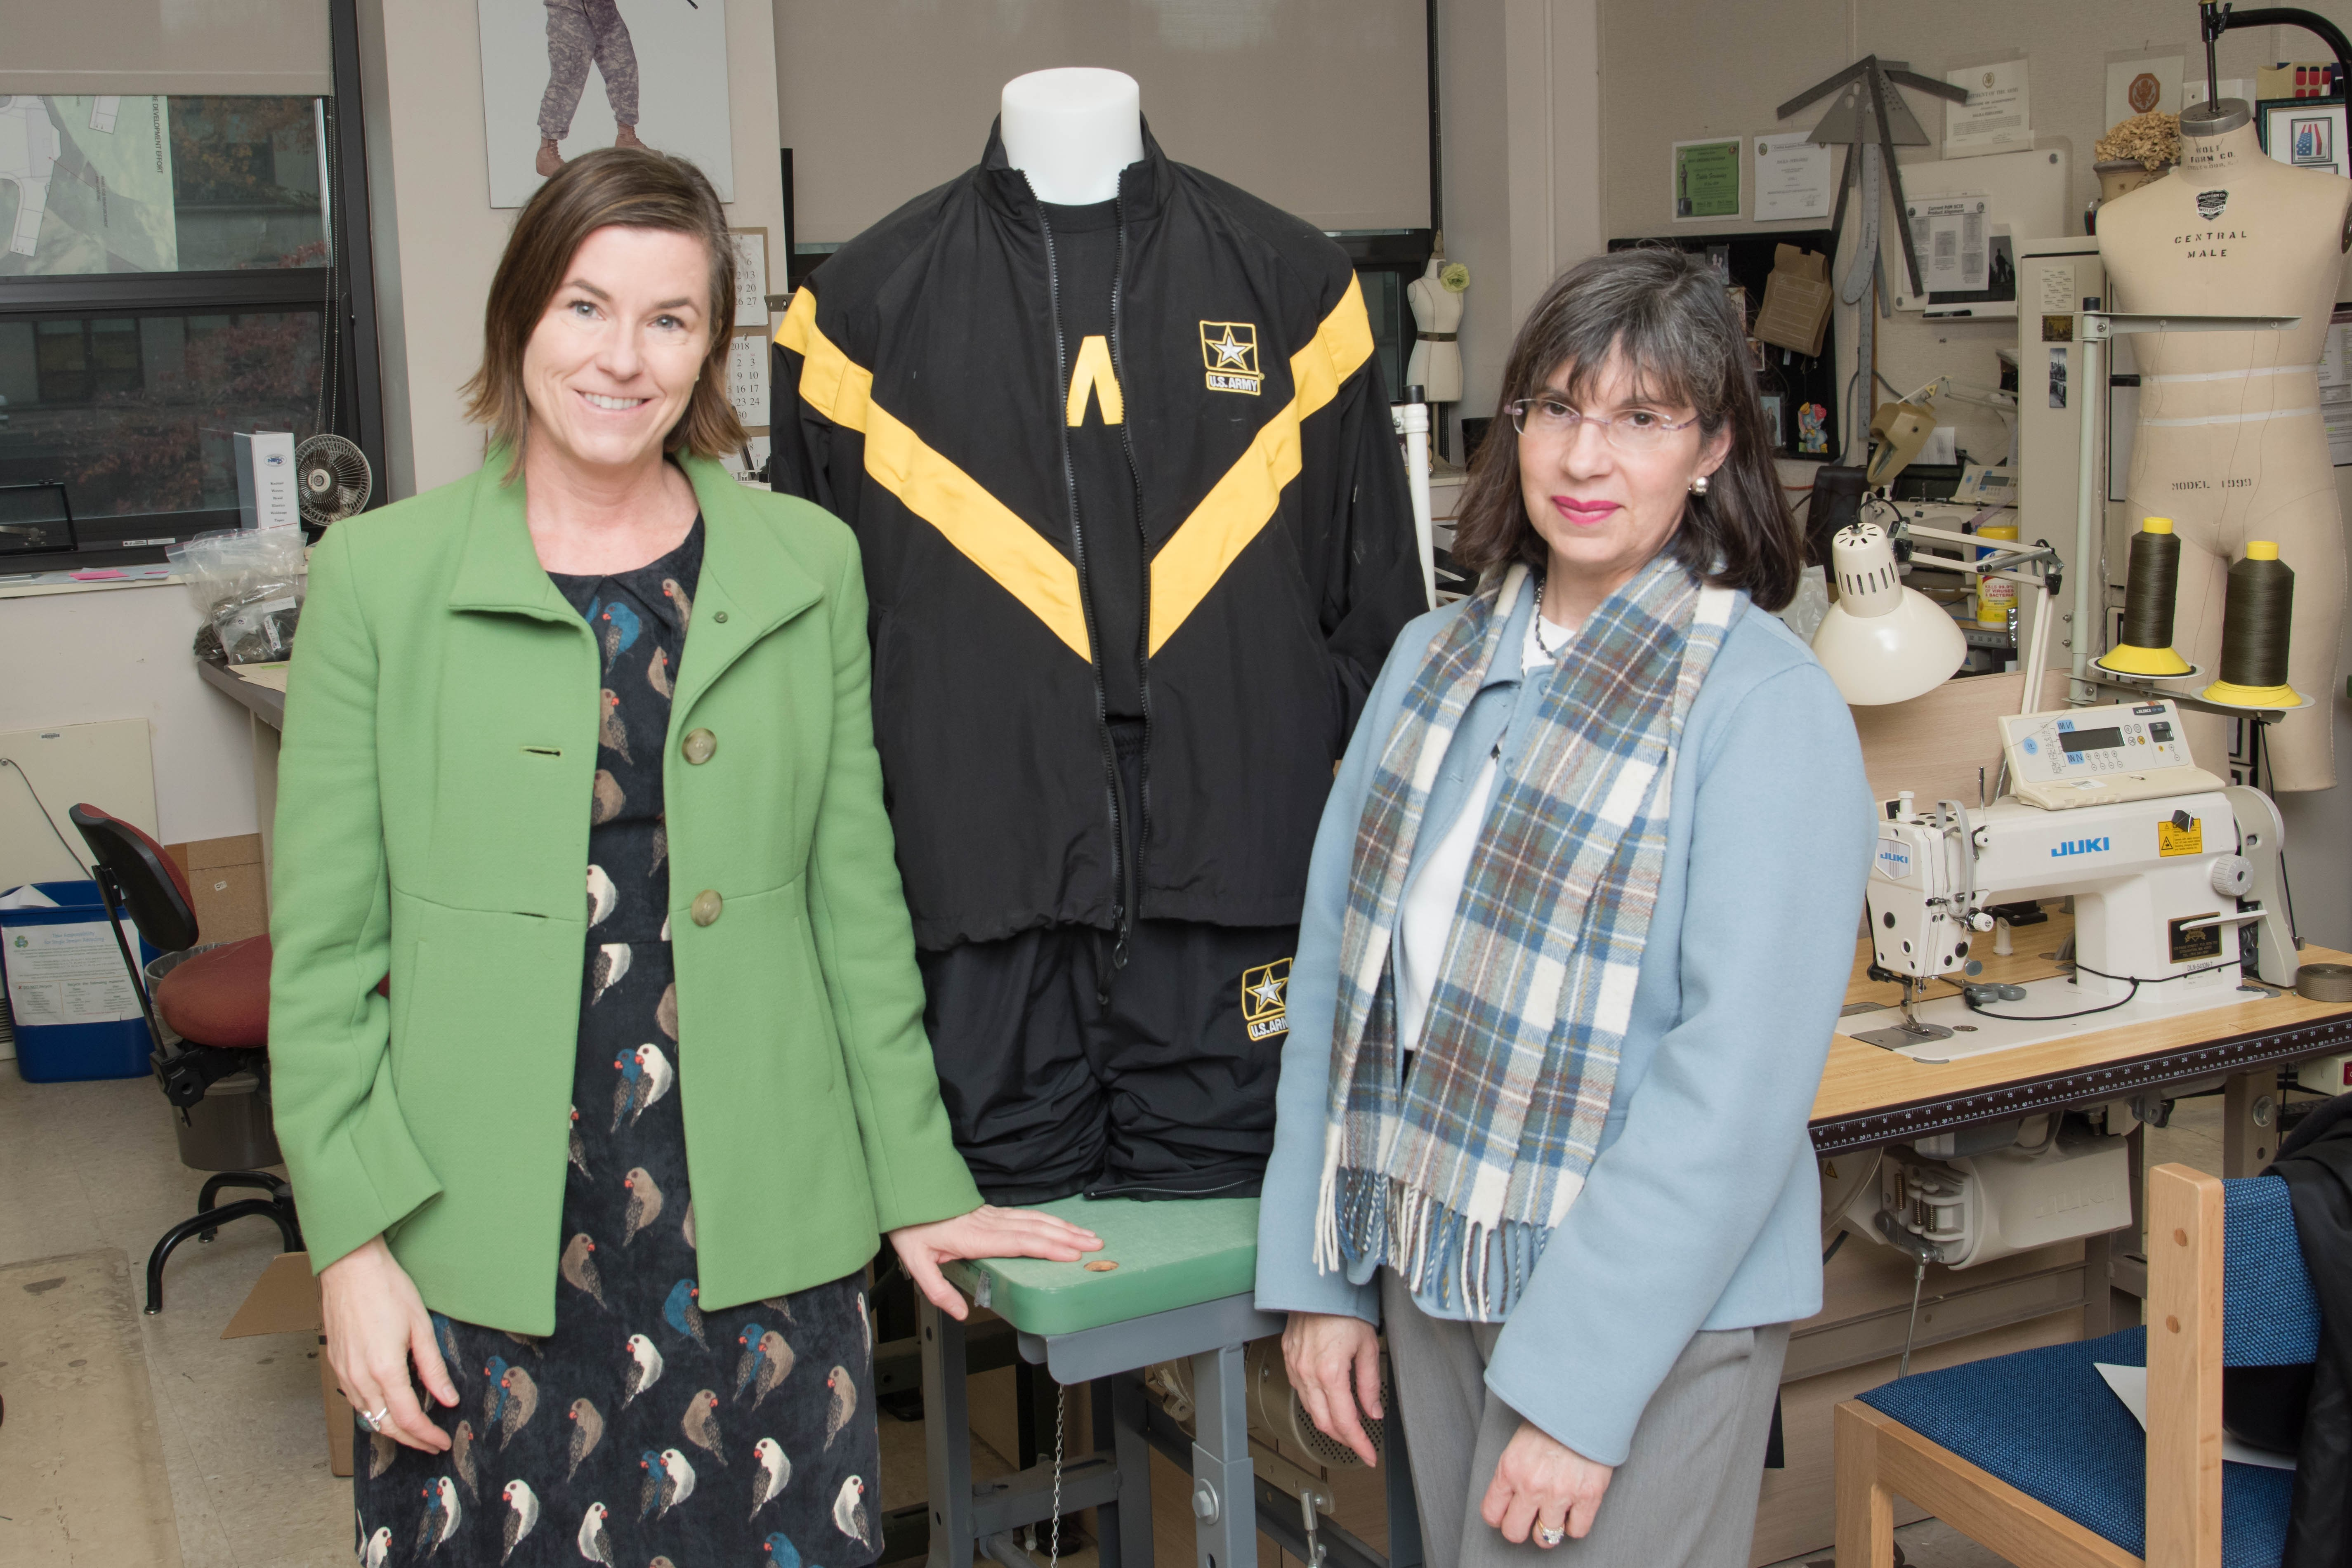 Designing Excellence Rdecom Soldier Center Hosts Boston S School Of Fashion Design Article The United States Army